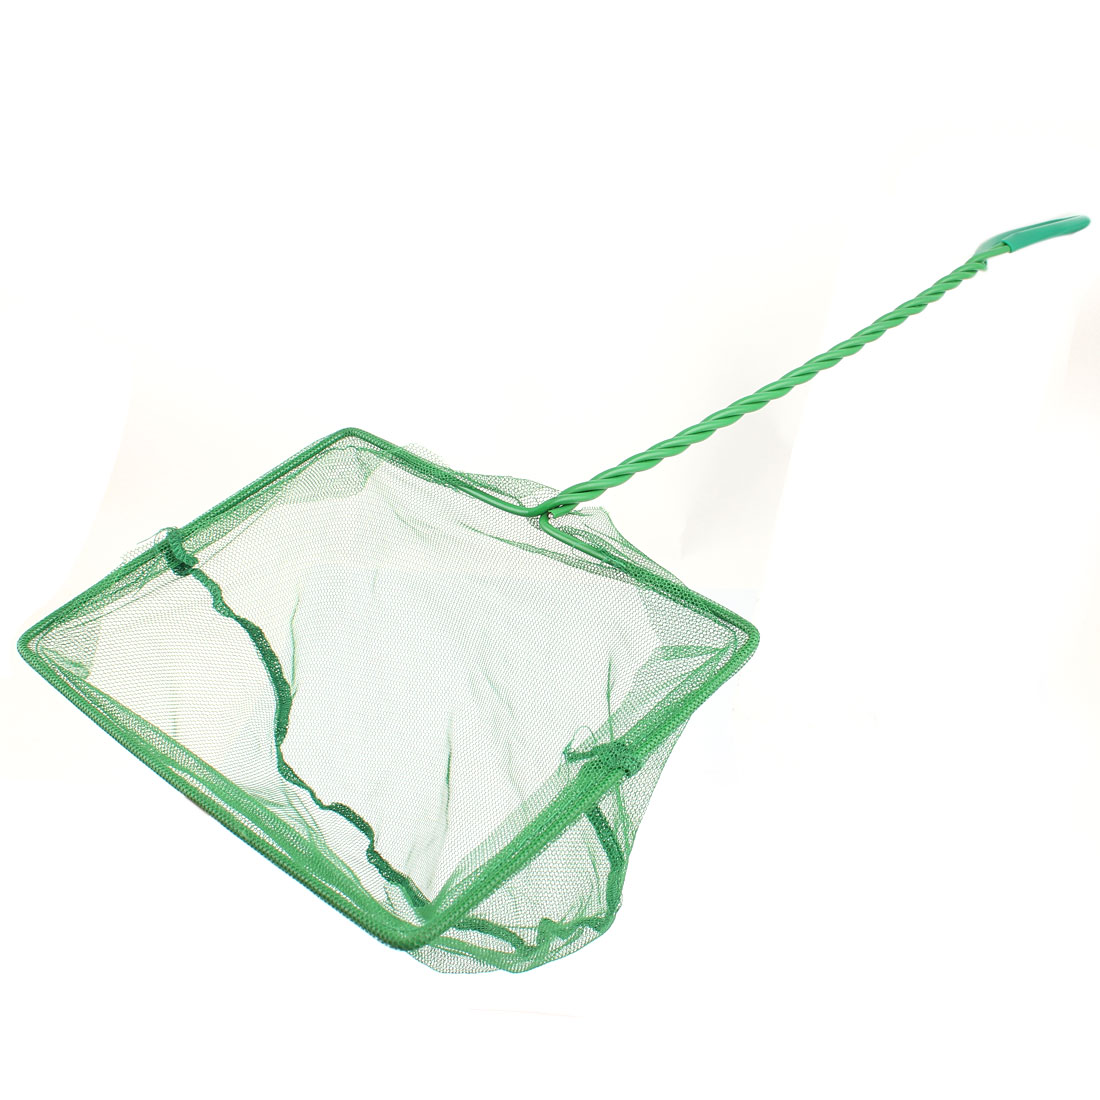 Plastic Twisted Handle Aquarium Fish Shrimp Landing Net Green